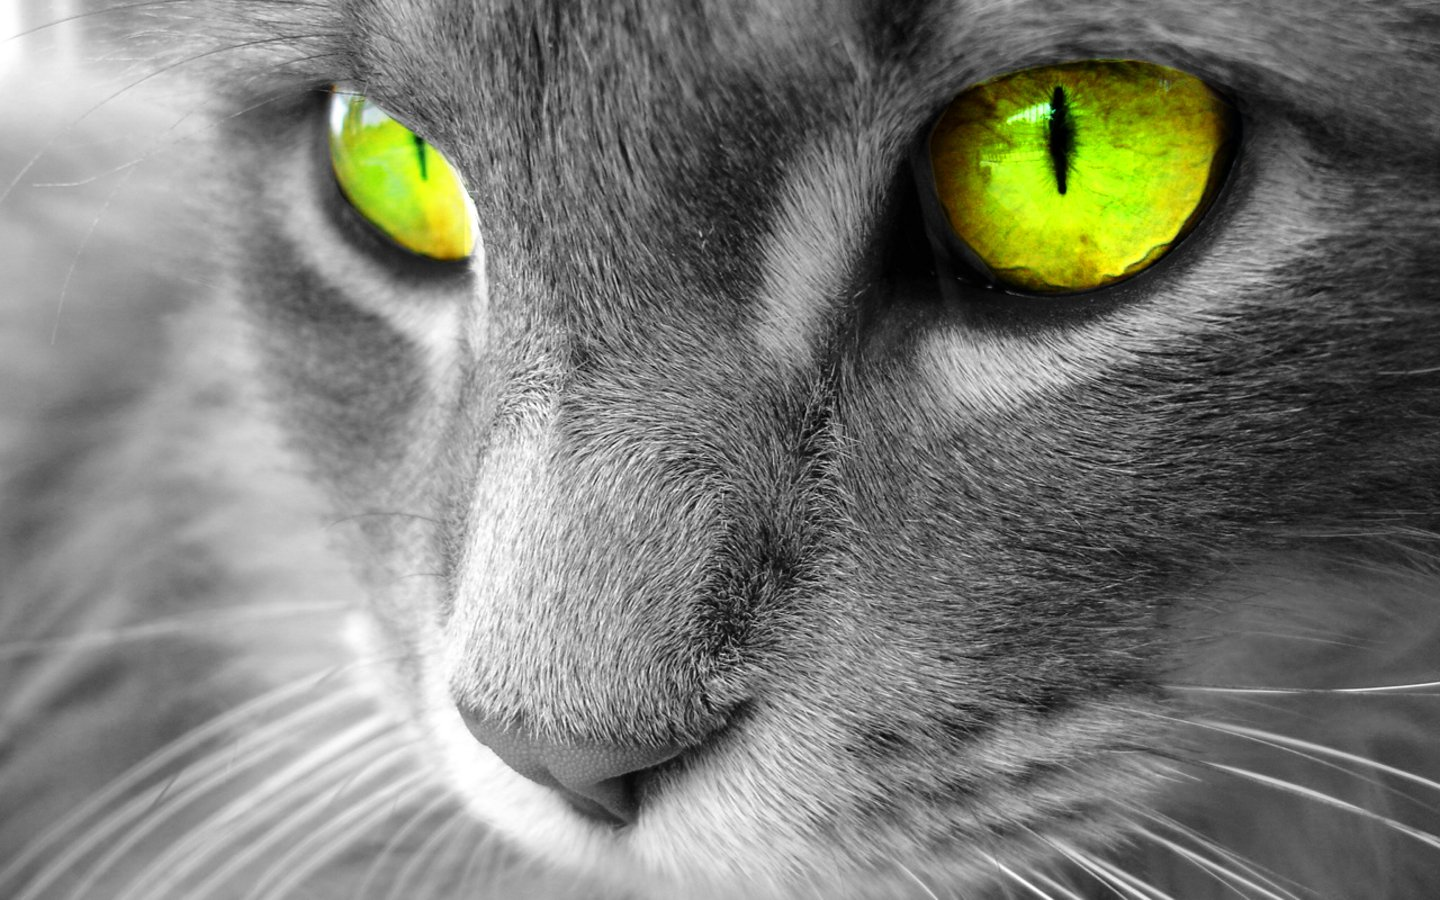 http://4.bp.blogspot.com/-zMHiCzFlGKw/T8cGmGa3Z5I/AAAAAAAAA1A/H5rWqDcNdys/s1600/The-best-top-desktop-cat-wallpapers-3.jpg